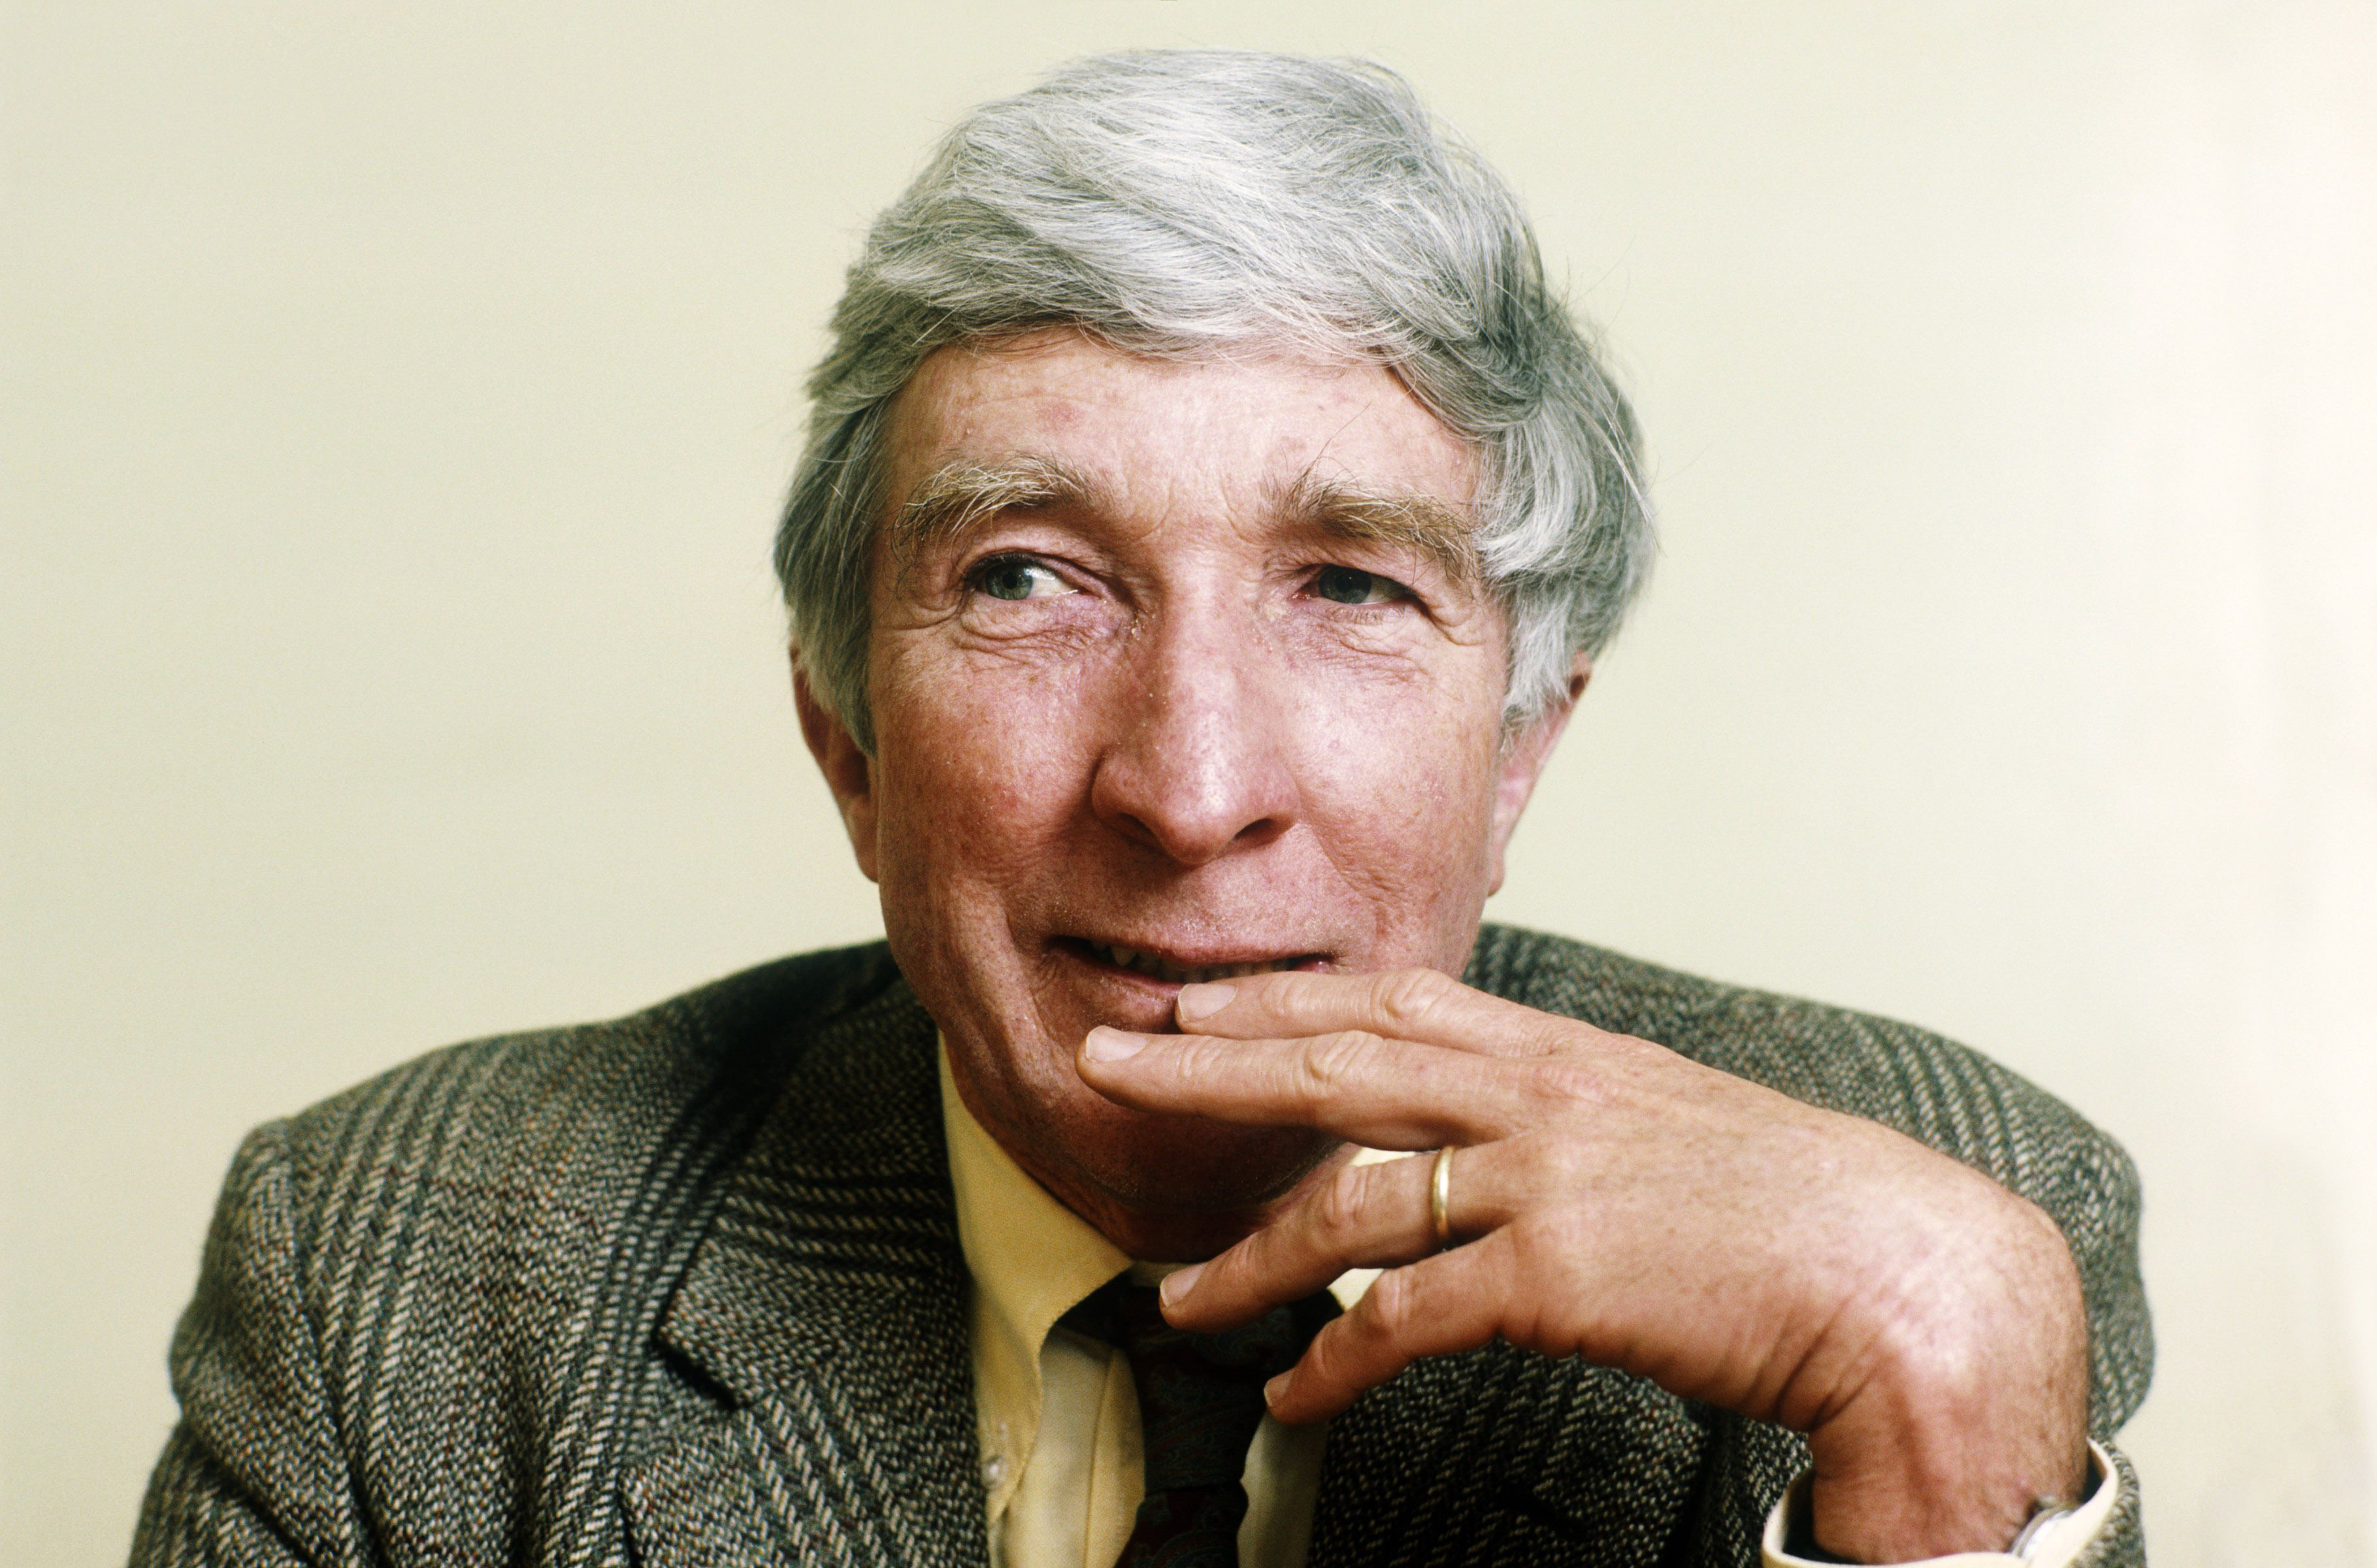 john updikes personal essays John updike's why write main idea updike's argument in this essay is that writing is a powerful tool because it allows for self expression and it can expand others' knowledge through the writer's wisdom.